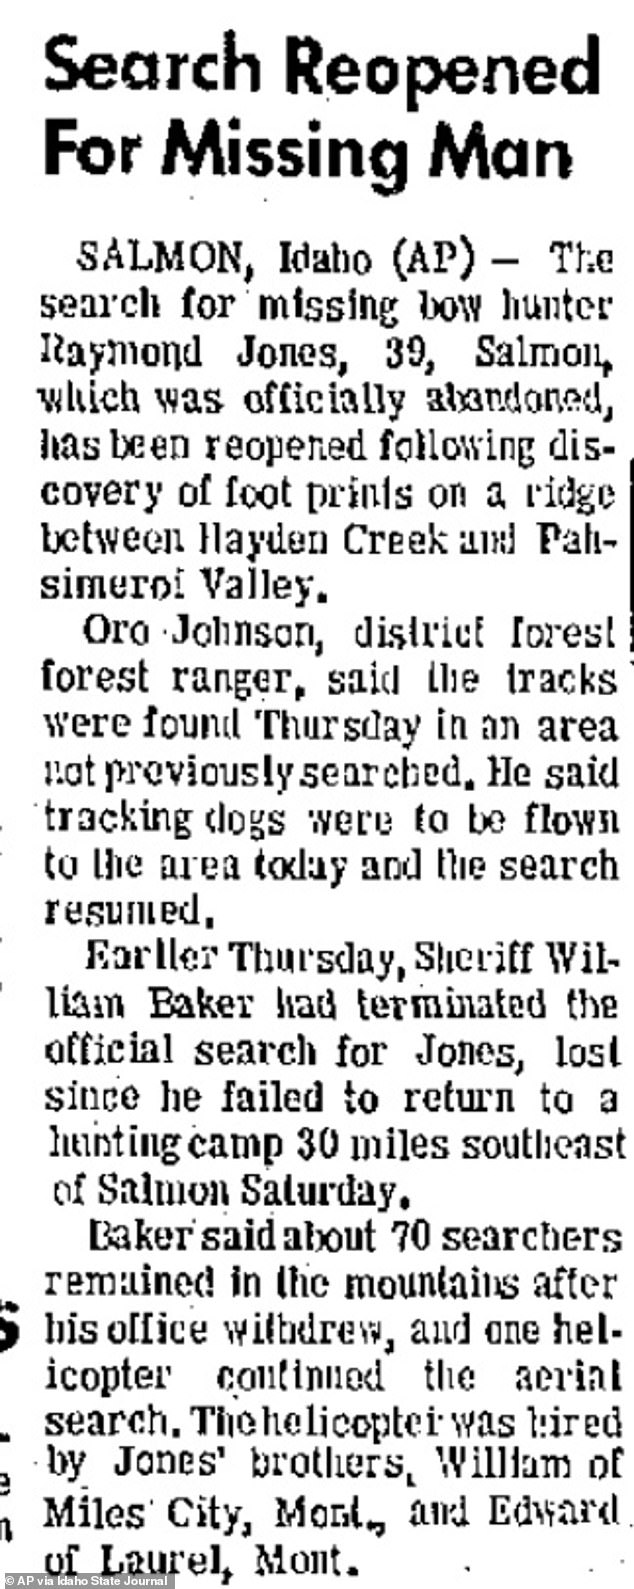 A search party was started for Jones after he disappeared on September 7 1968 while he was looking for mountain goats